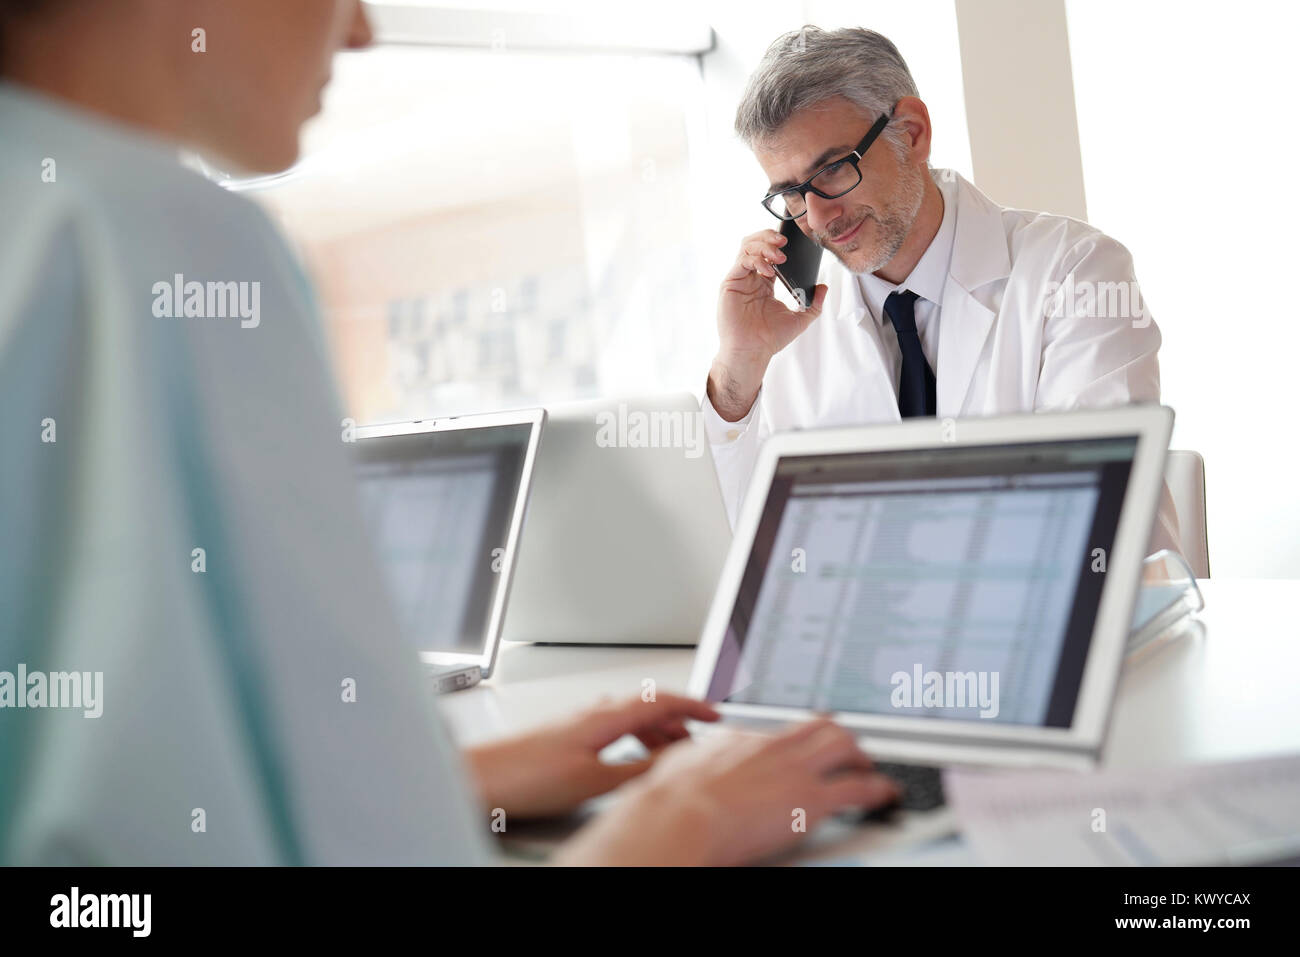 Mature doctor in office talking on phone Photo Stock